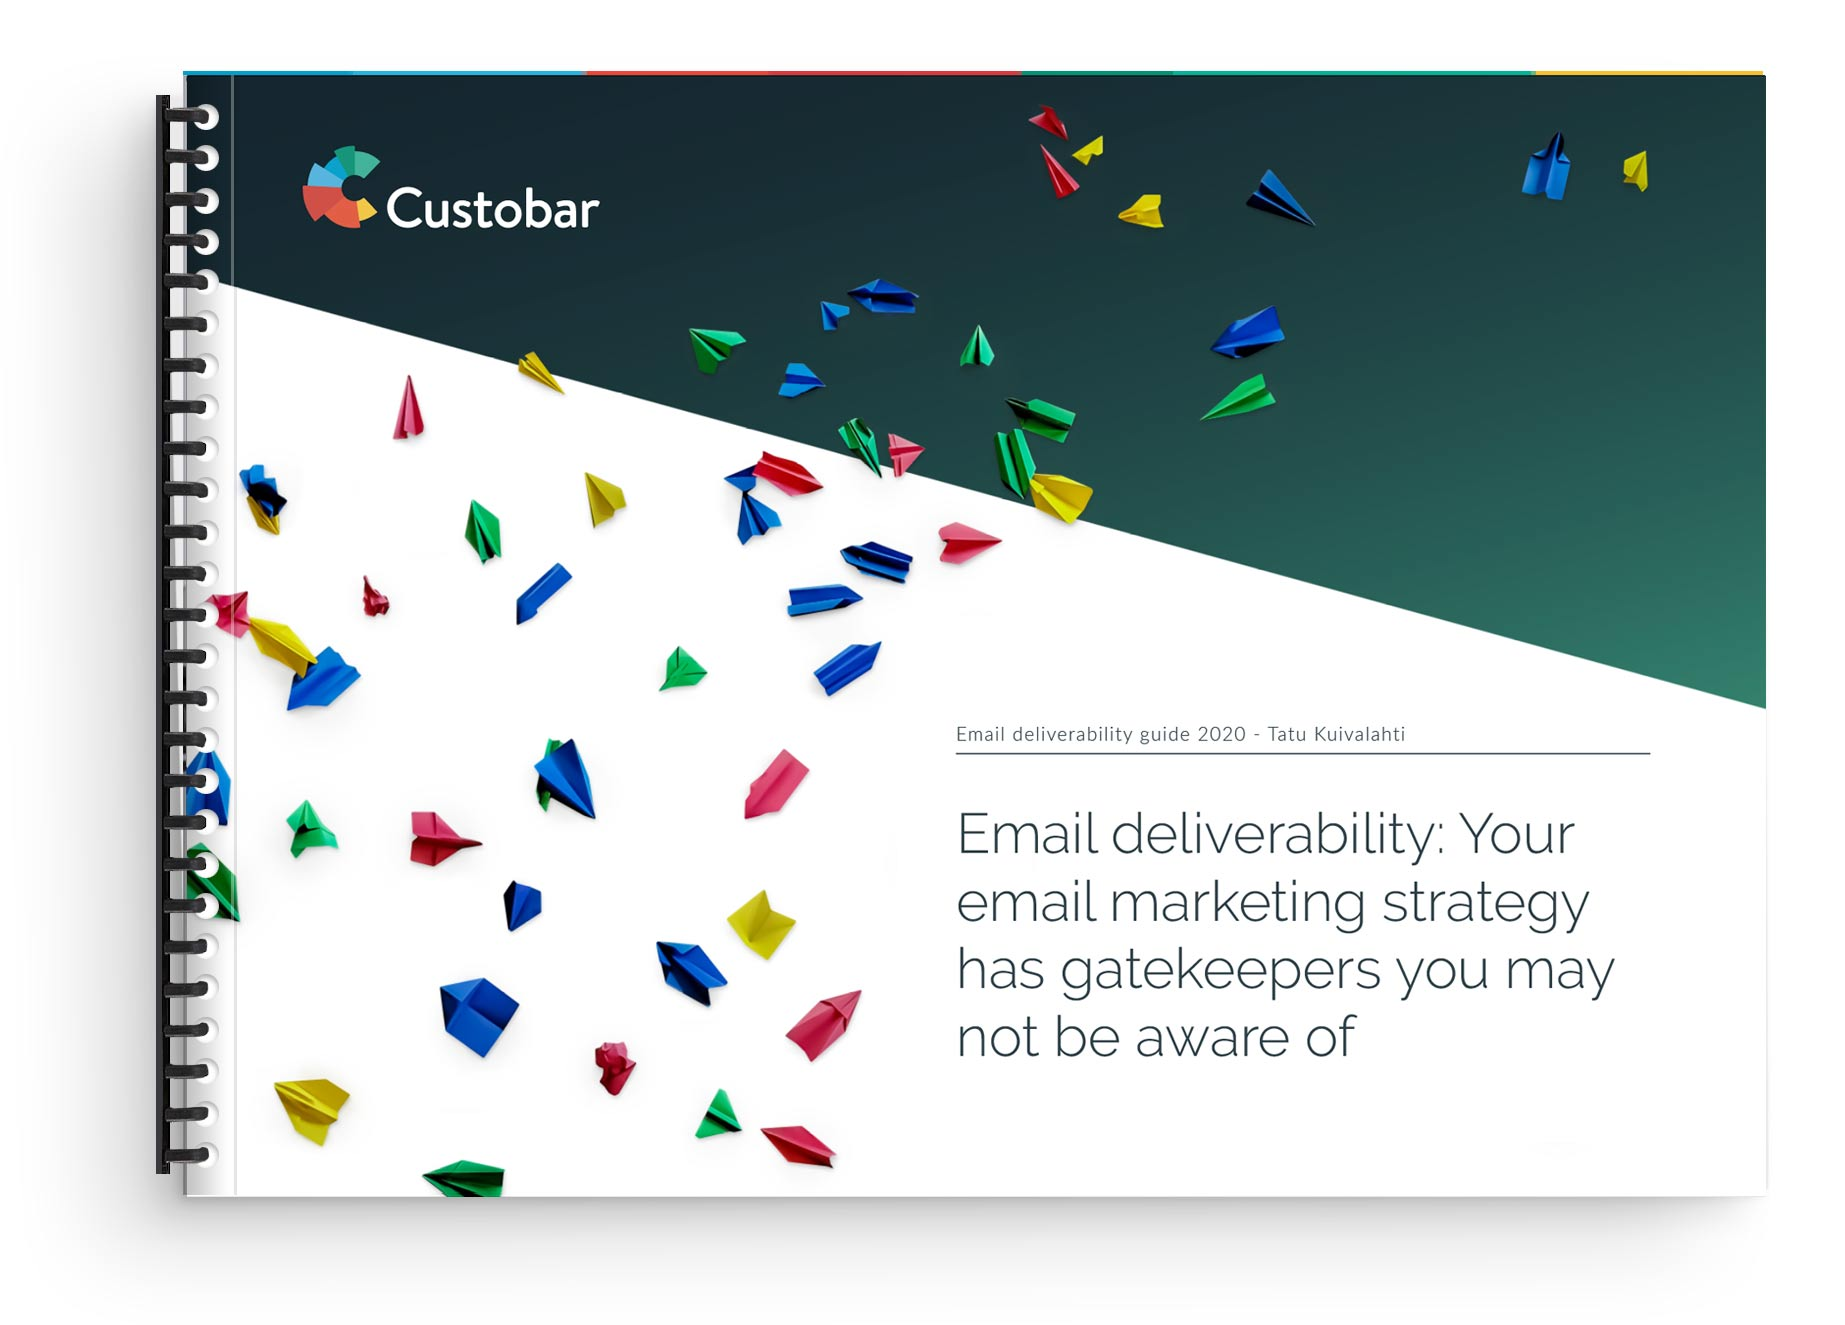 Email deliverability: your email marketing strategy has gatekeepers you may not be aware of